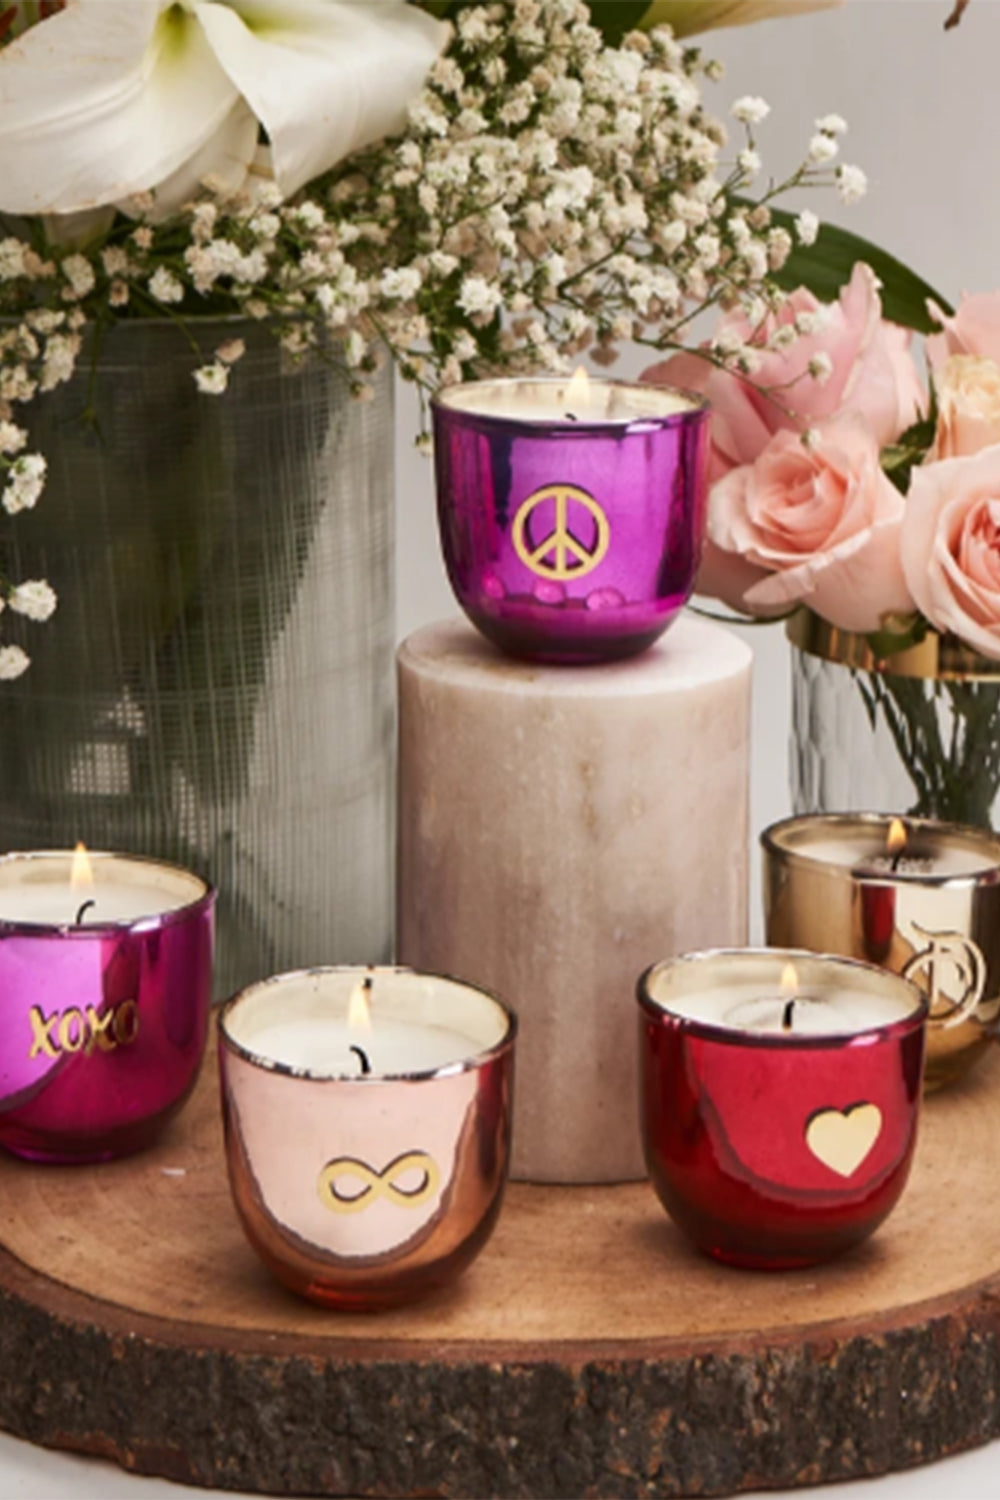 5 Shades of Love | Set of 5 | Scented Candles